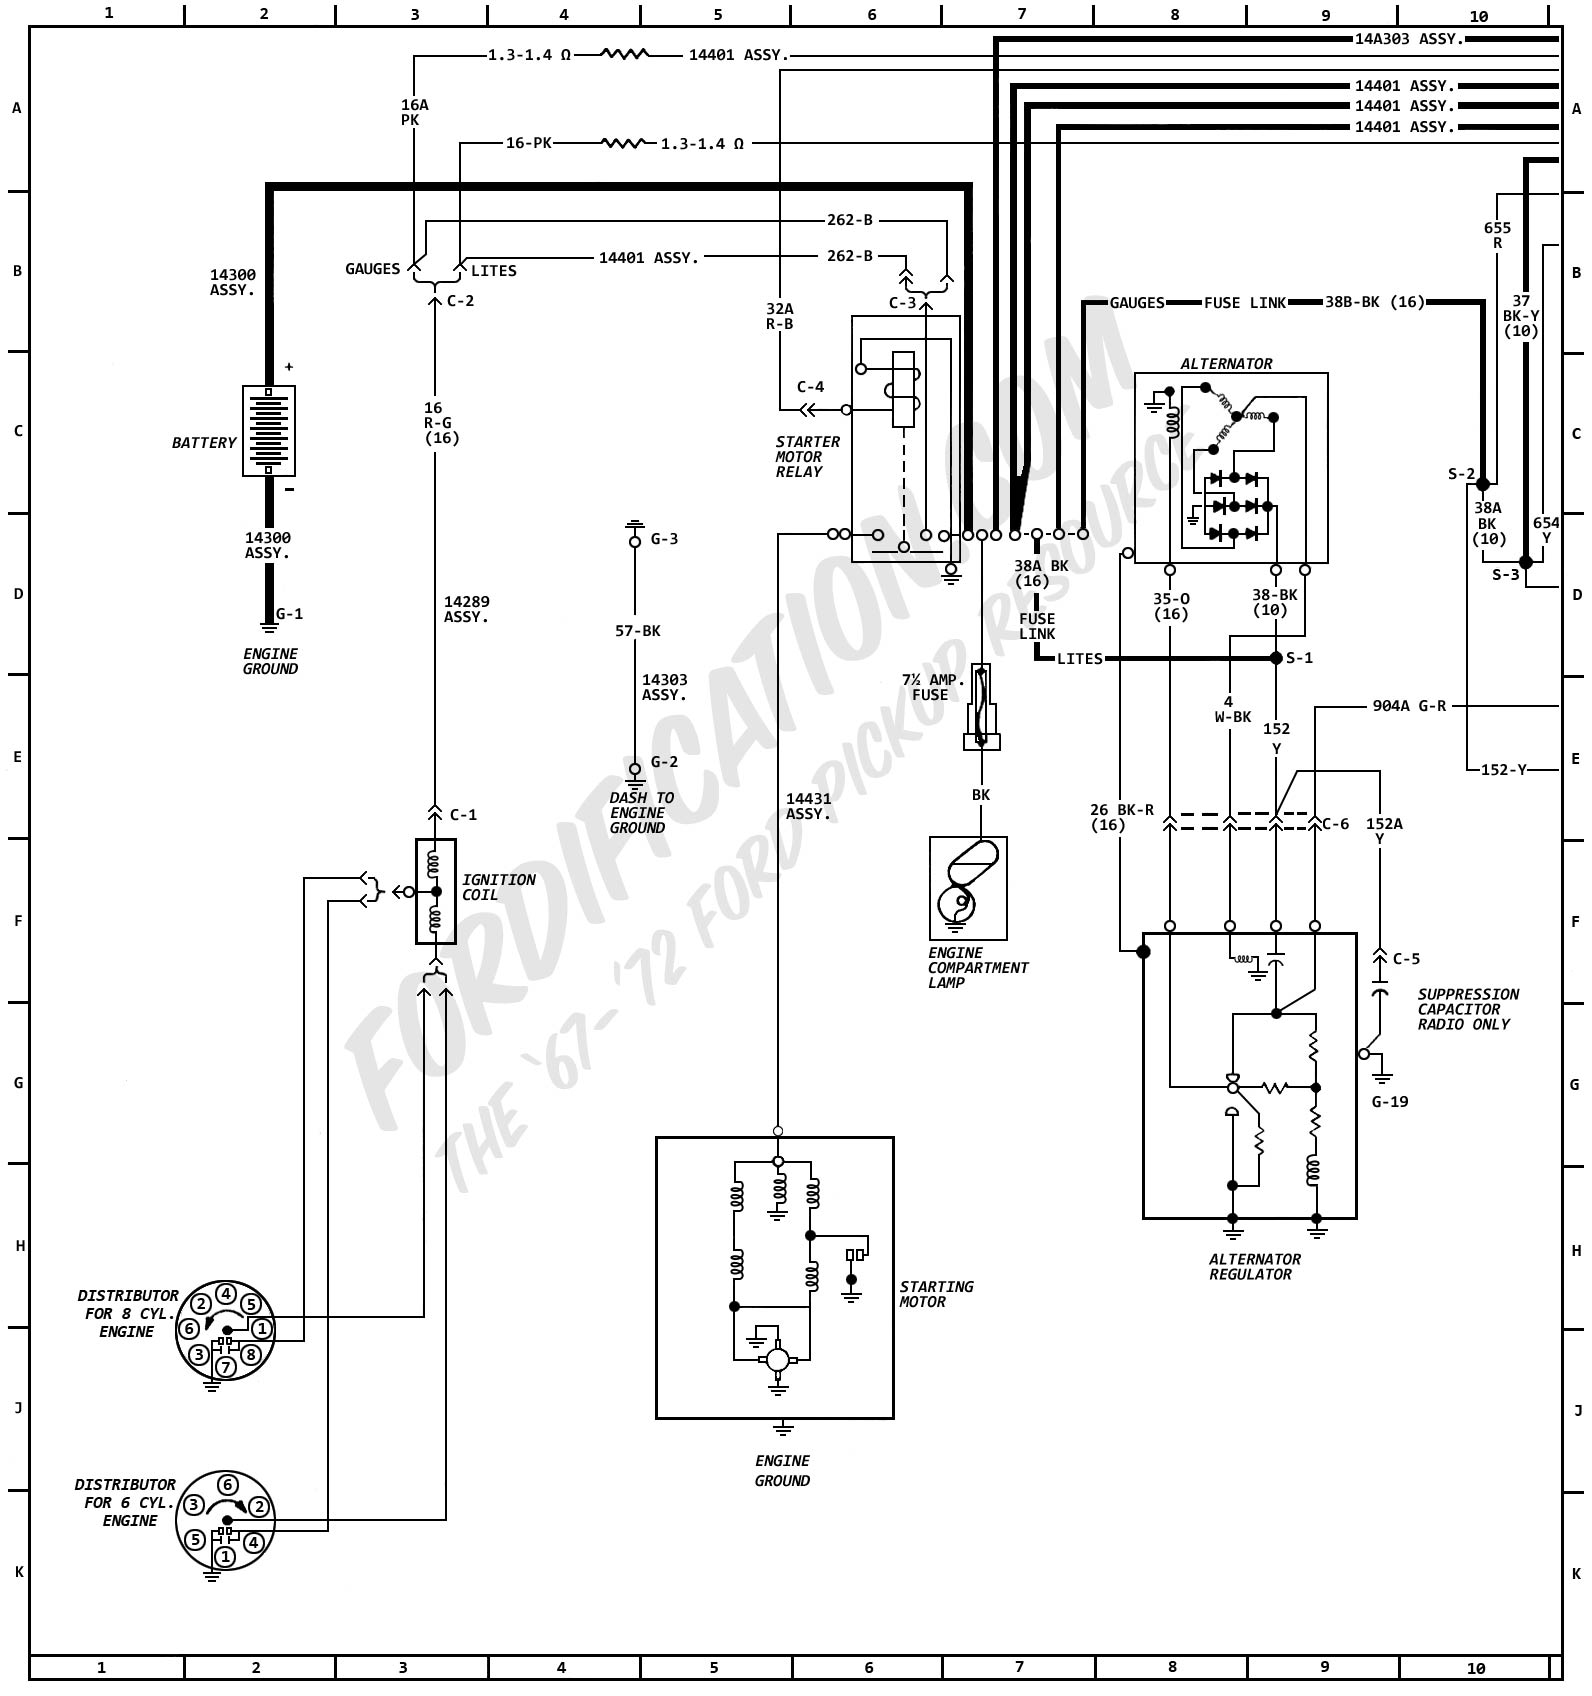 1972MasterWiring_01 1972 ford truck wiring diagrams fordification com 1972 ford f100 fuse box diagram at soozxer.org